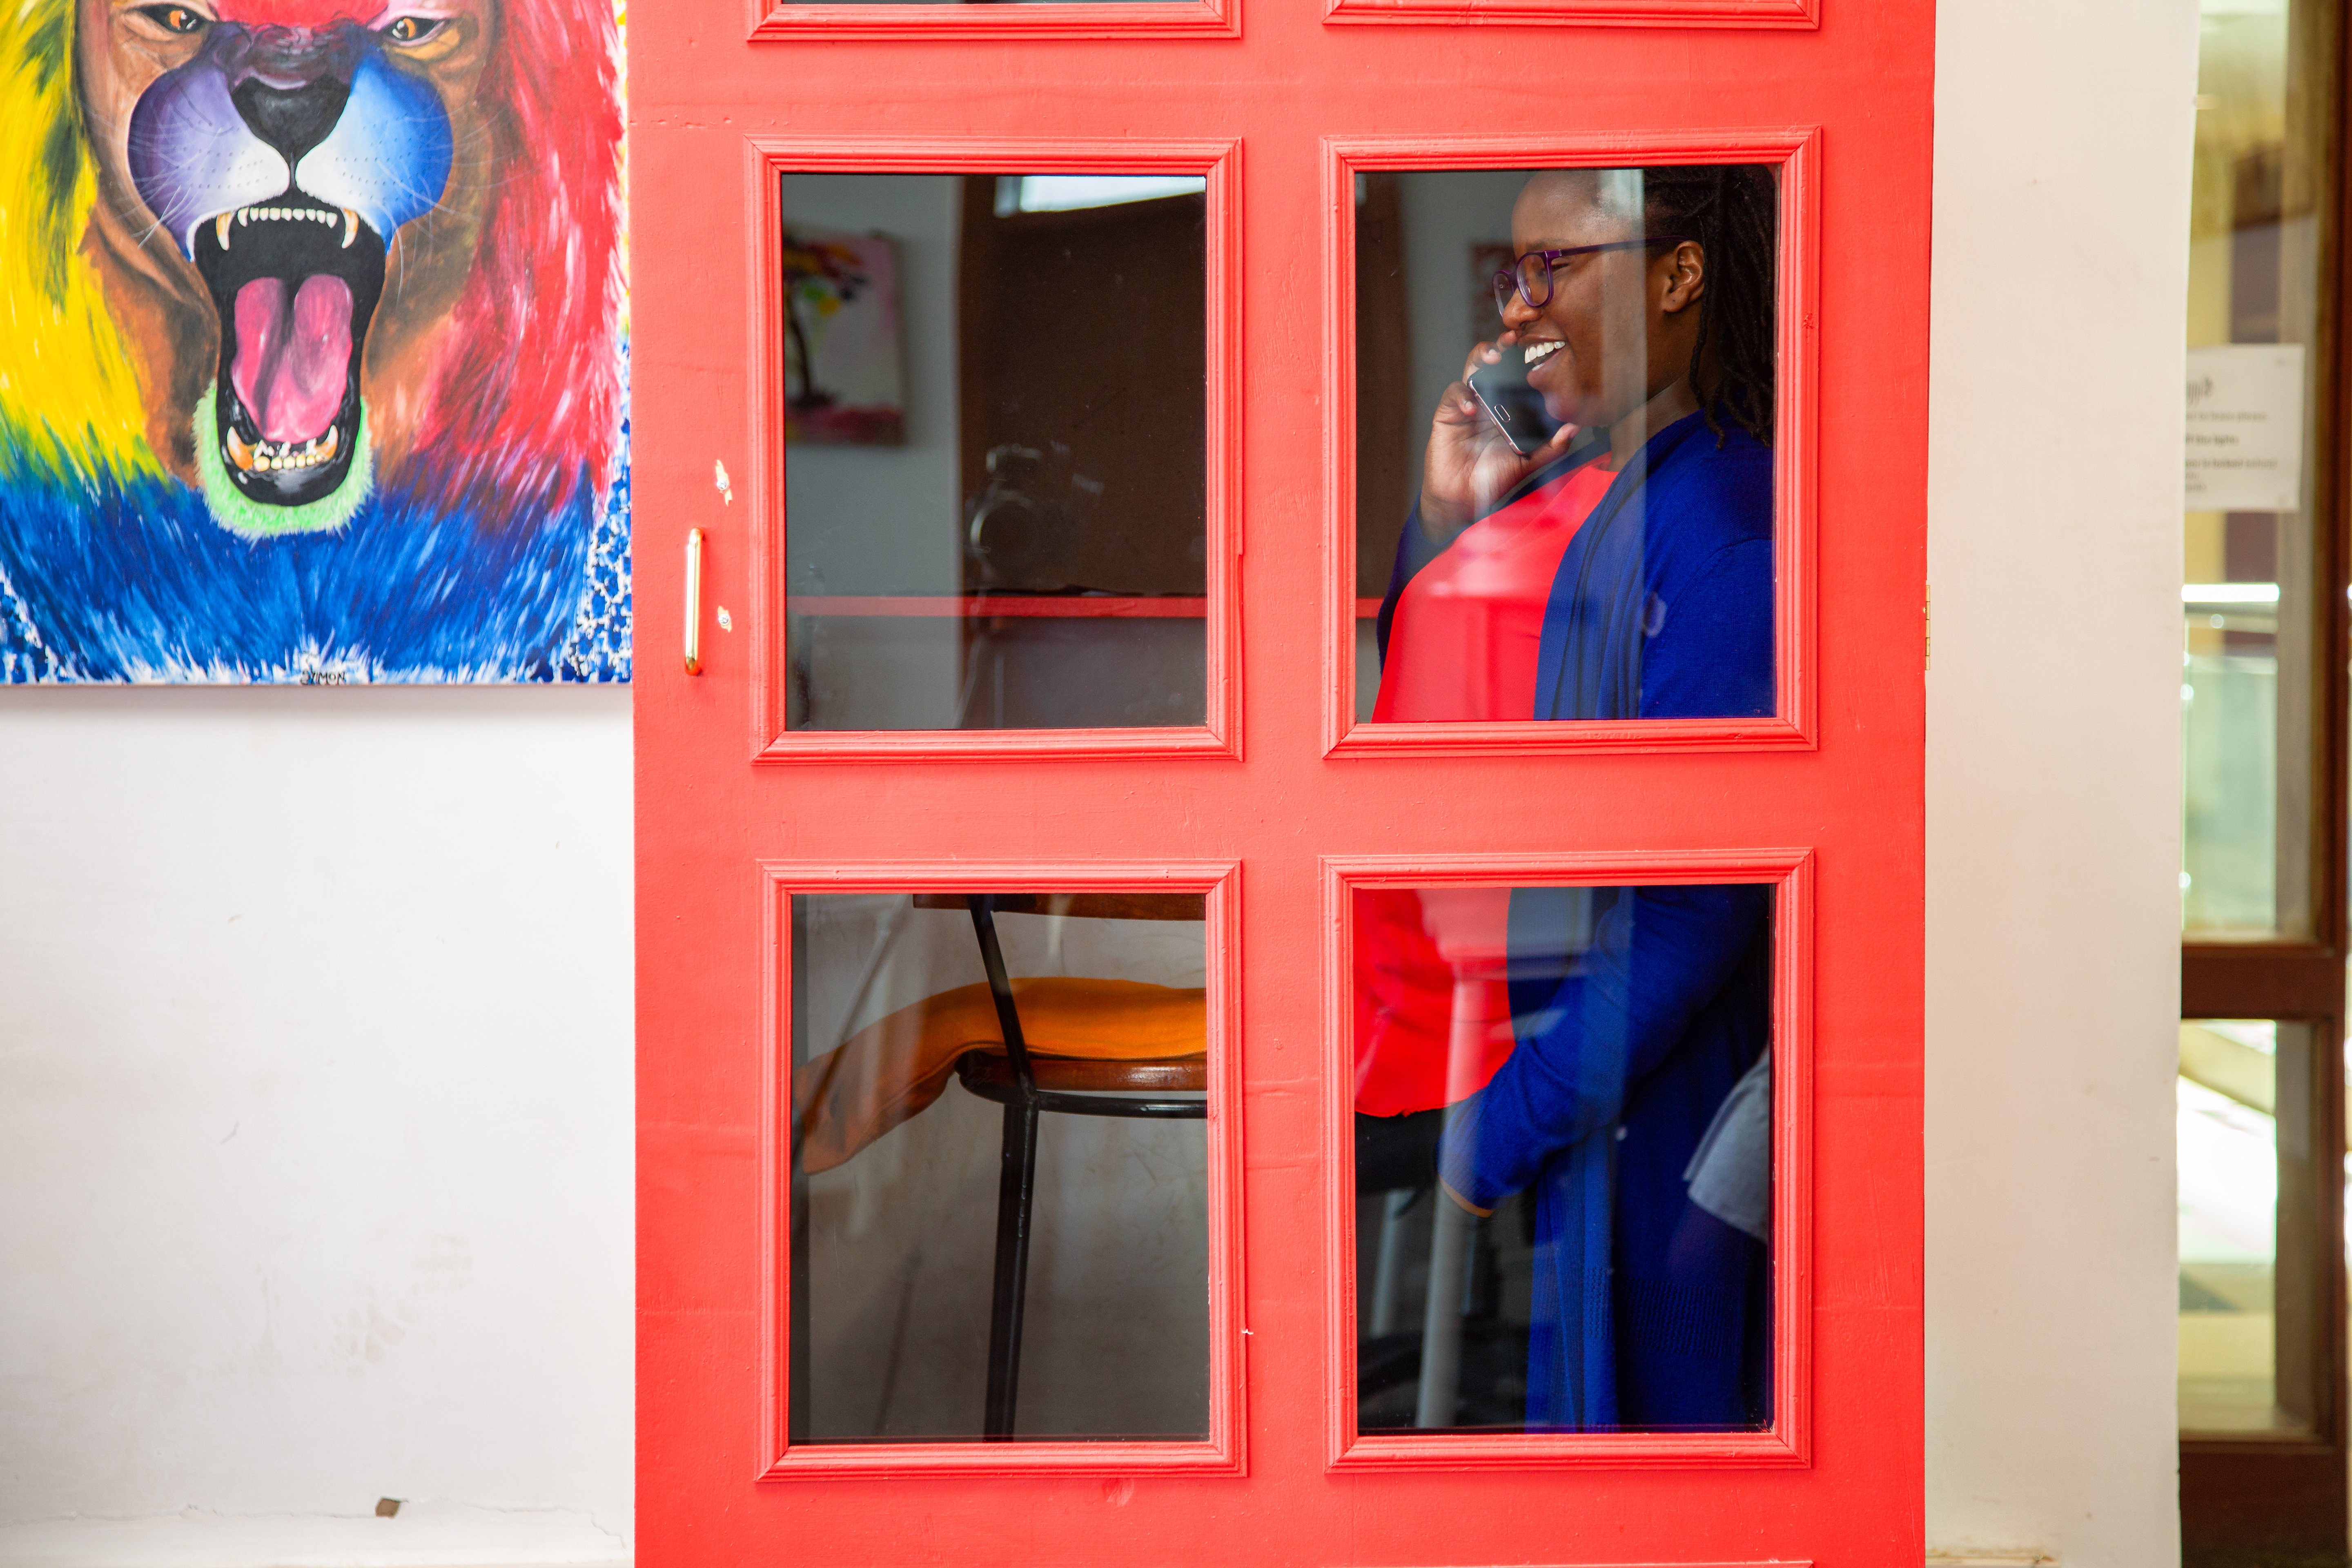 A private office comes with access to phone booths